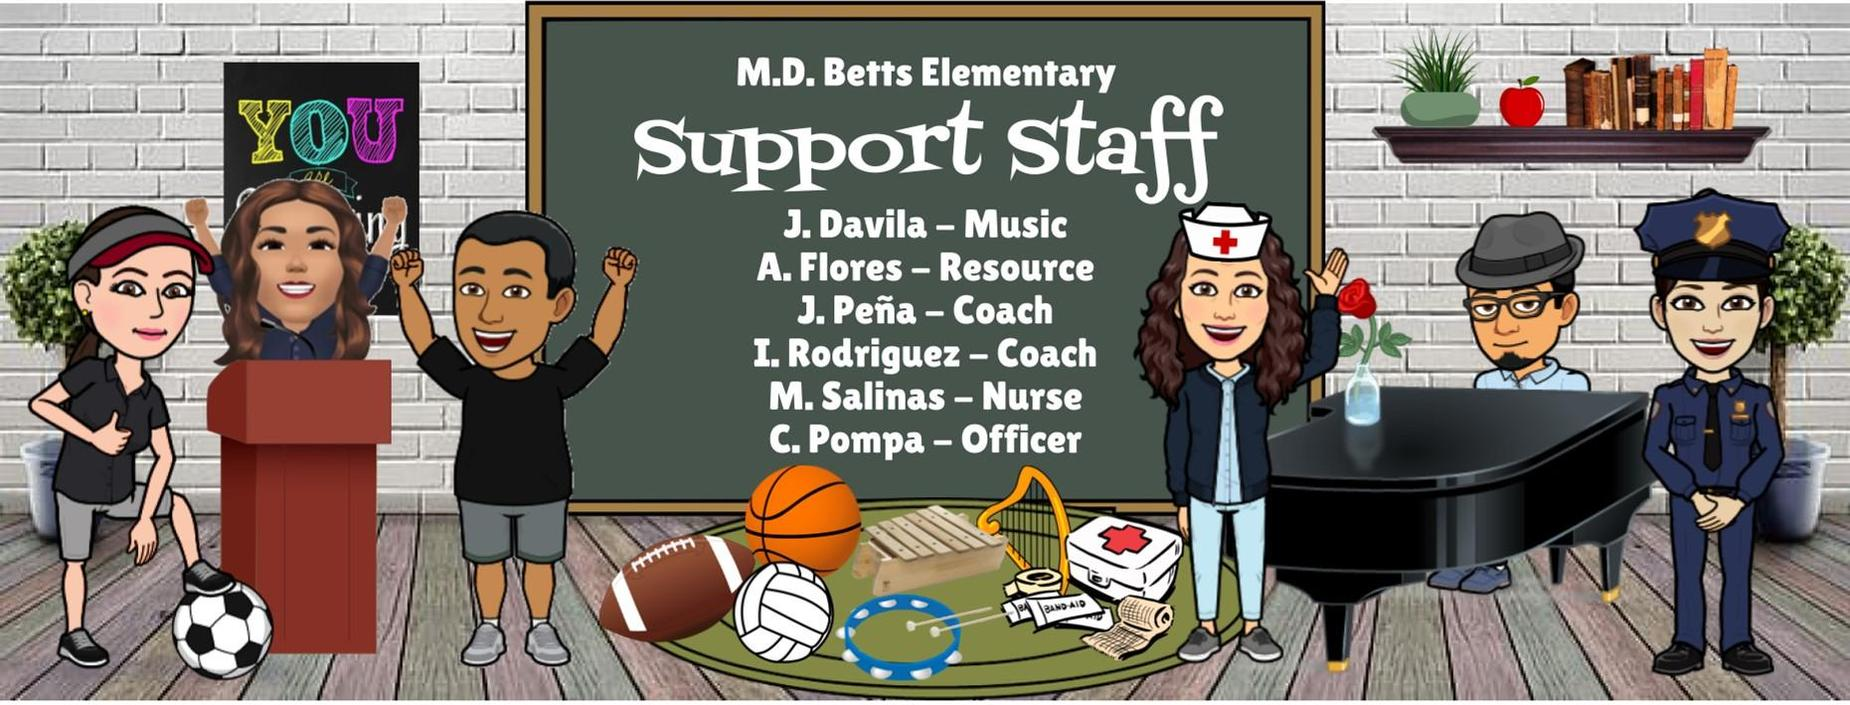 Image of Support Staff